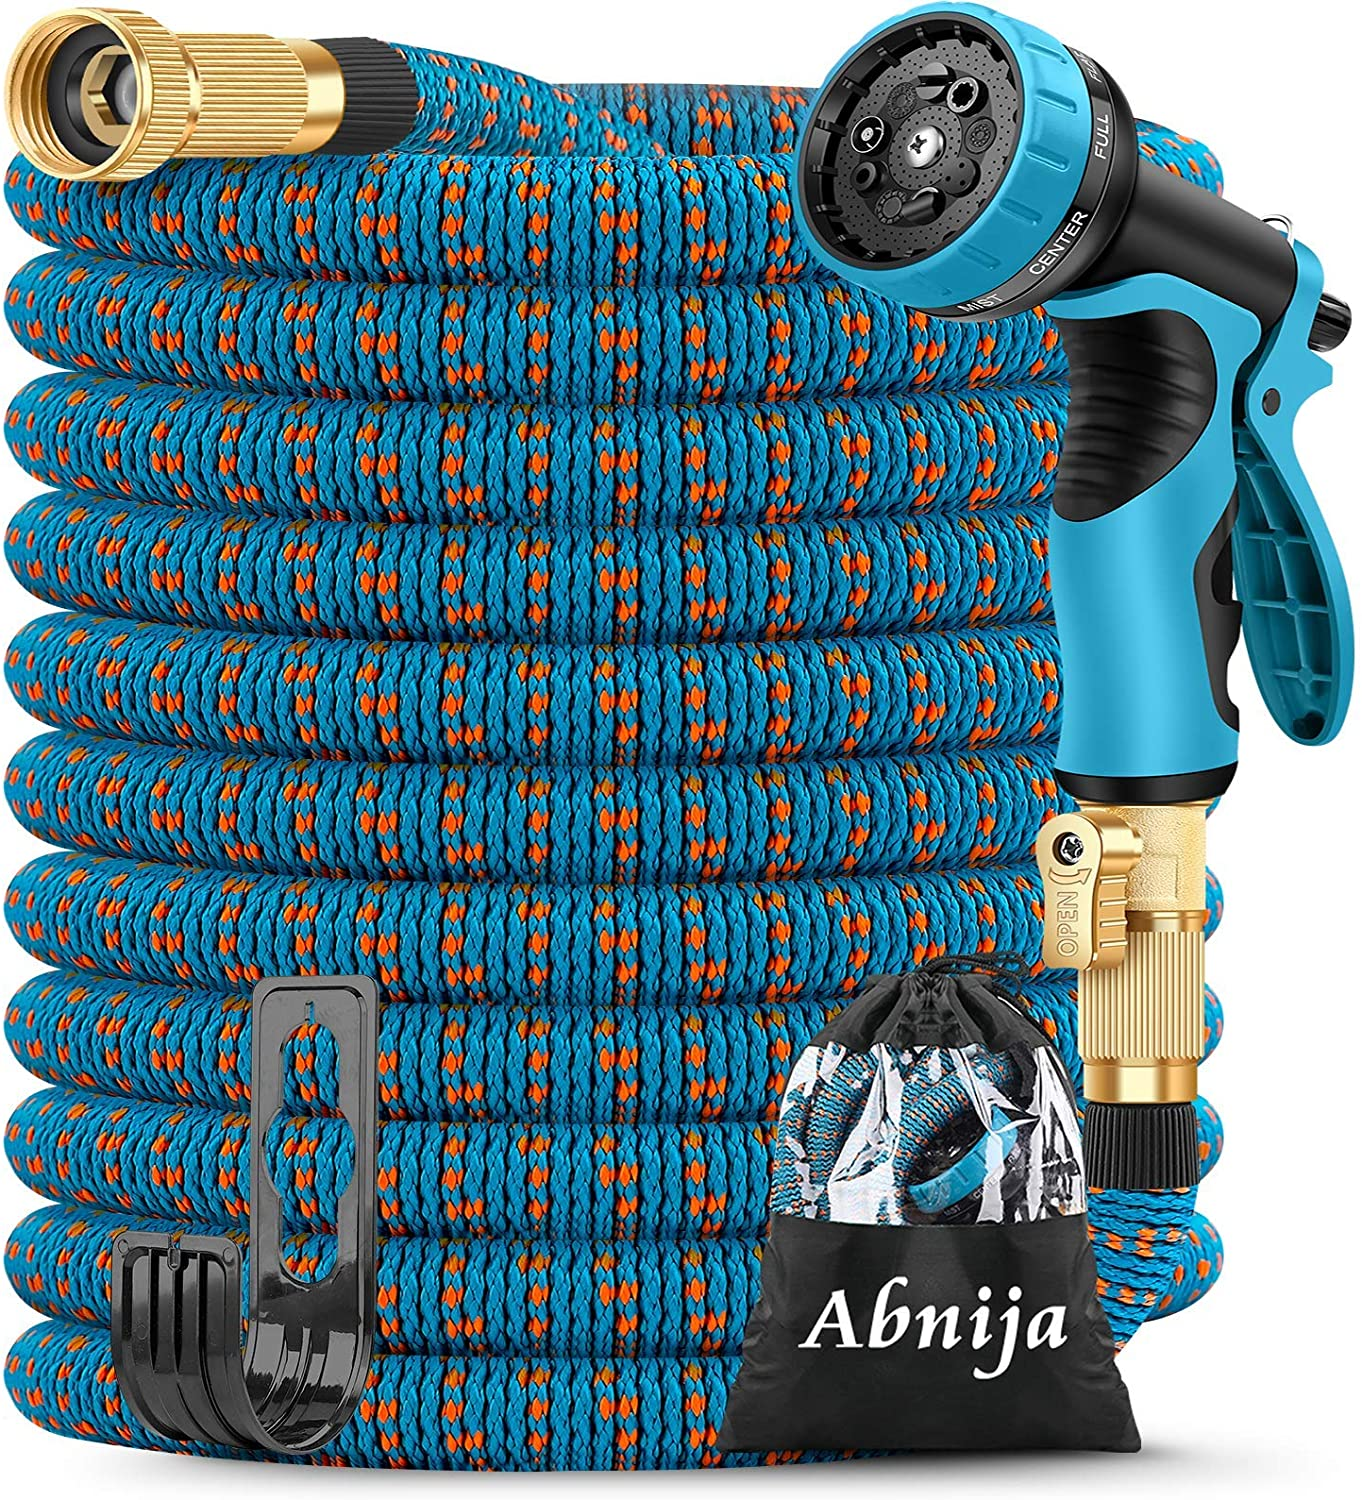 75ft Garden Hose, Abnija Expandable Water Hose Leakproof with Durable 3-Layers Latex Extra Strength Fabric Solid Brass Fittings Flexible Kink Free Hose Pipe for Watering Gardening Washing